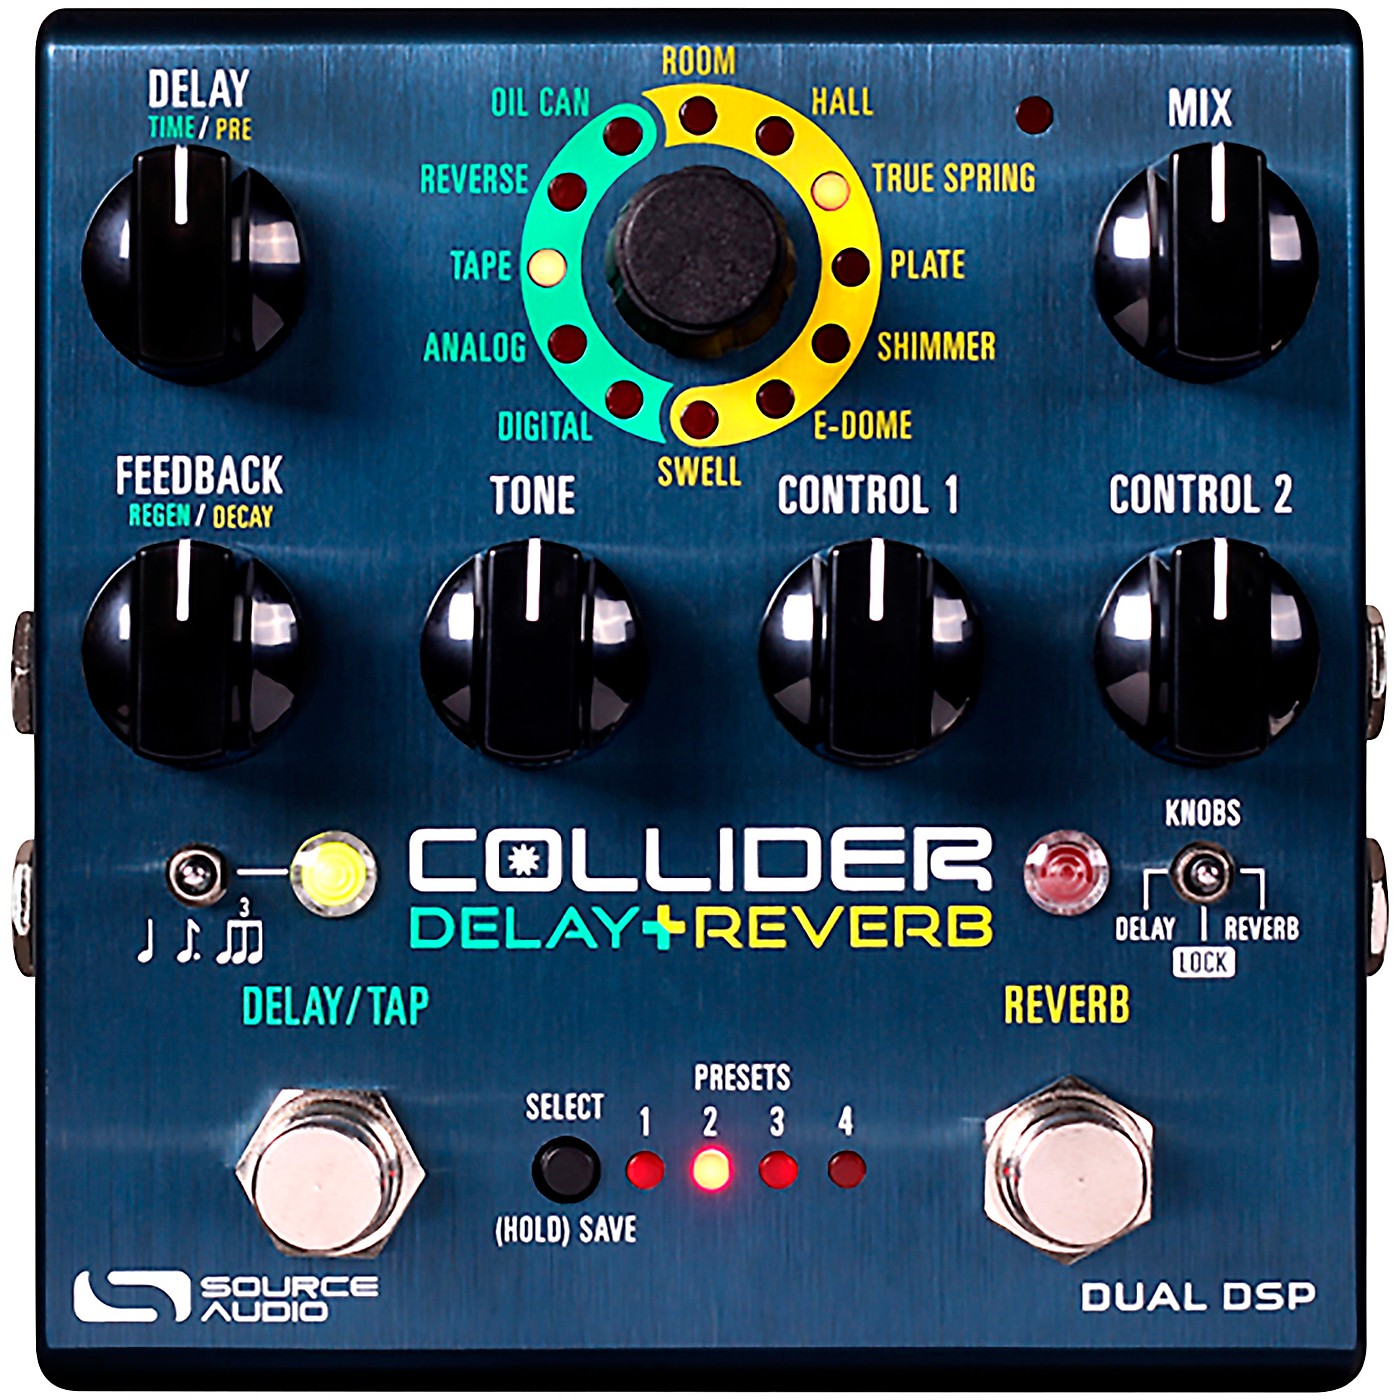 Source Audio Sa263 Collider Stereo Delay Reverb Effects Pedal thumbnail